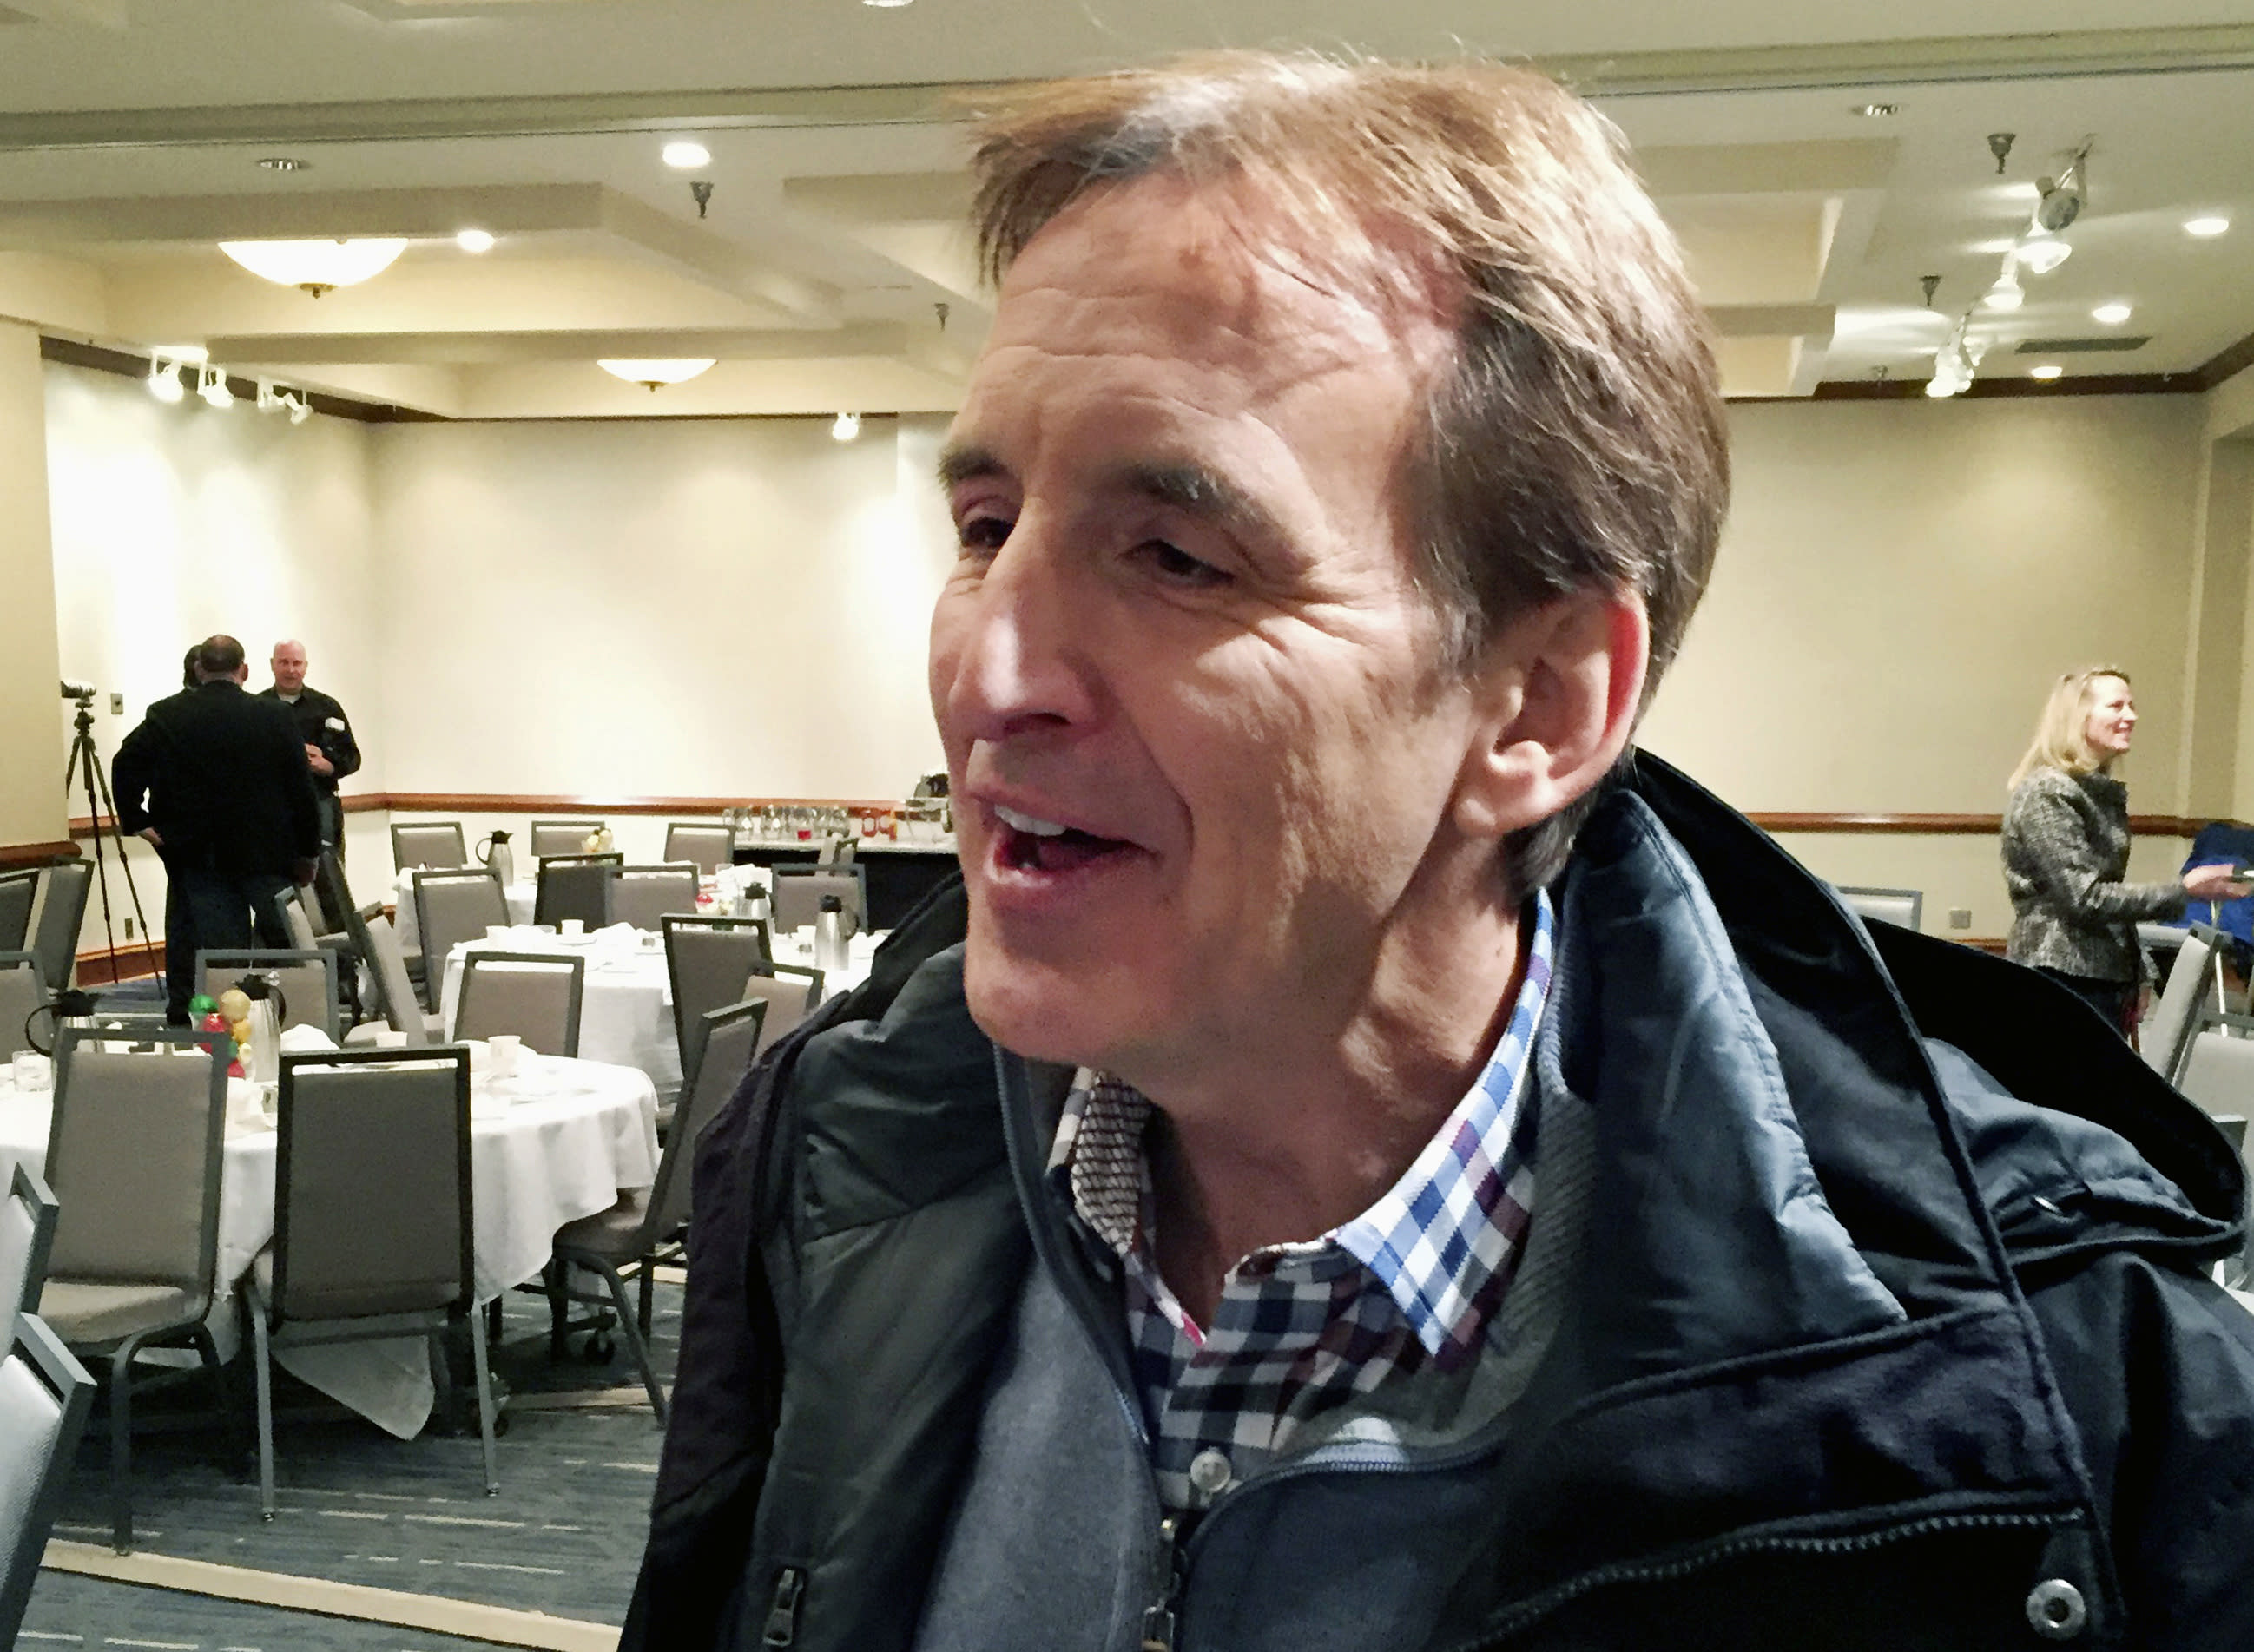 FILE - In this Dec. 8, 2017, file photo, former Minnesota Gov. Tim Pawlenty speaks after a Chamber of Commerce breakfast in St. Louis Park, Minn. The ranks of the forgotten Republicans are growing. They are members of Congress, governors and state party leaders who have been left behind by President Donald Trump's Republican Party. Some, like former Minnesota Gov. Tim Pawlenty, were forced out. (AP Photo/Steve Karnowski, File)